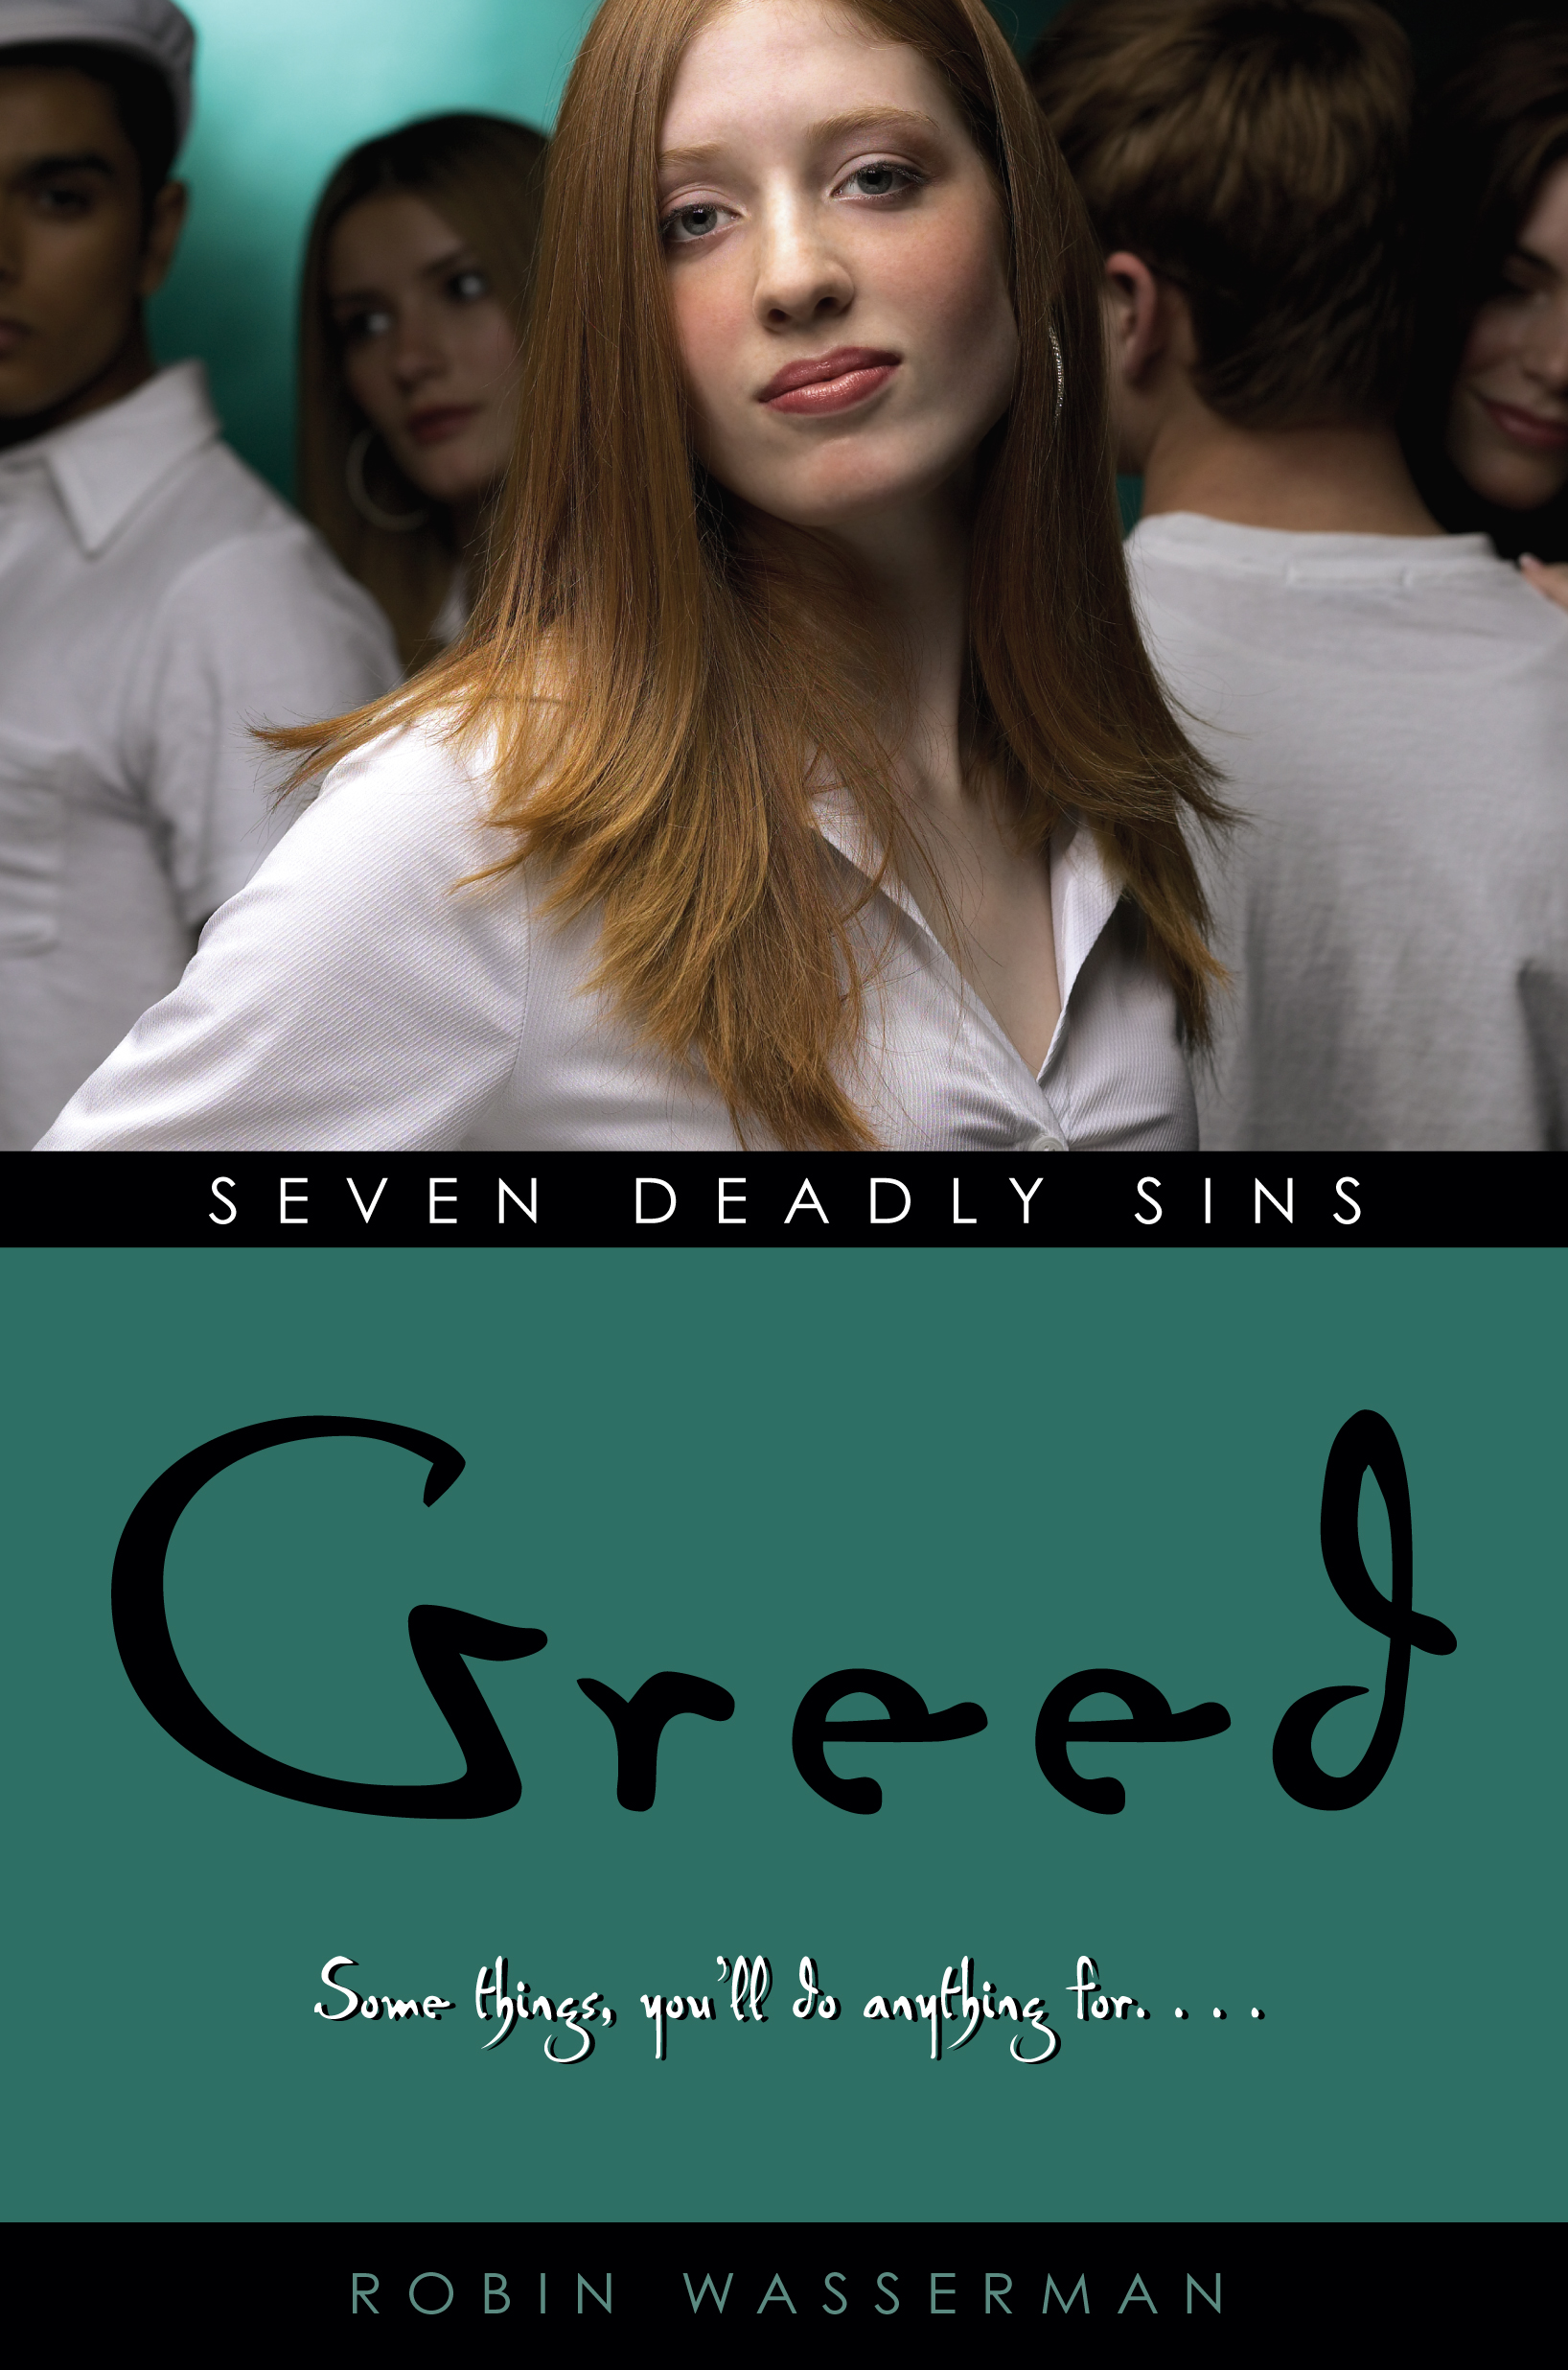 Seven Deadly Sins - The Foundry Publishing